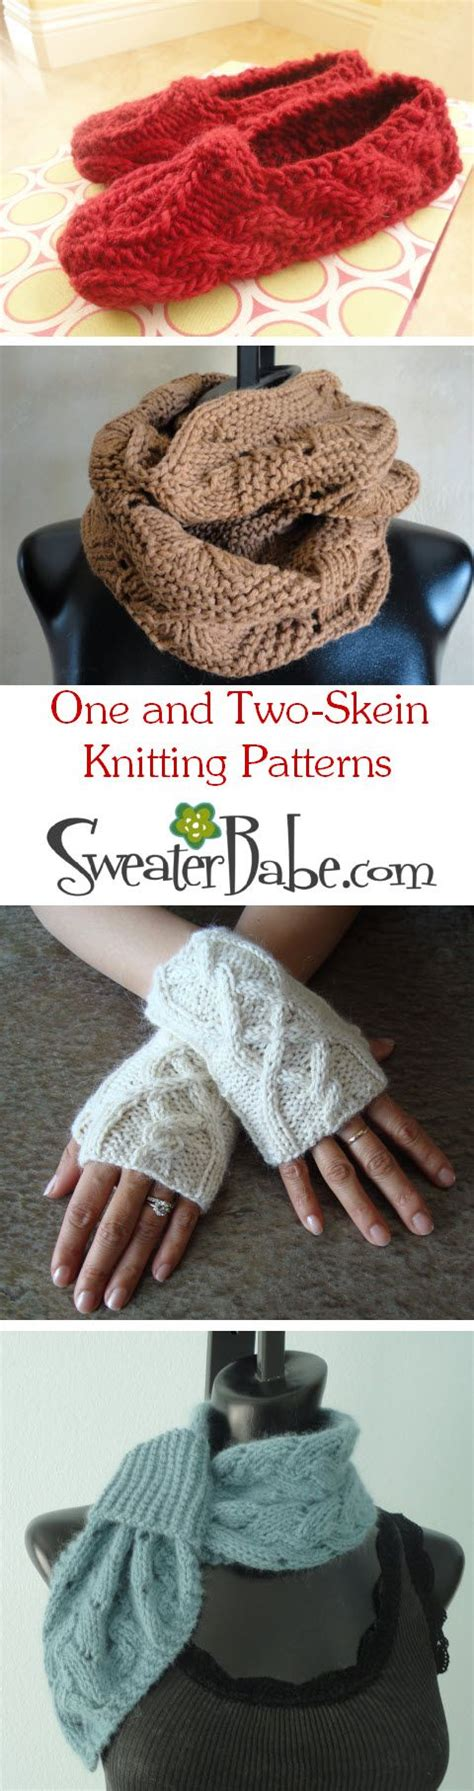 two skein knitting patterns one and two skein knitting patterns sweaterbabe